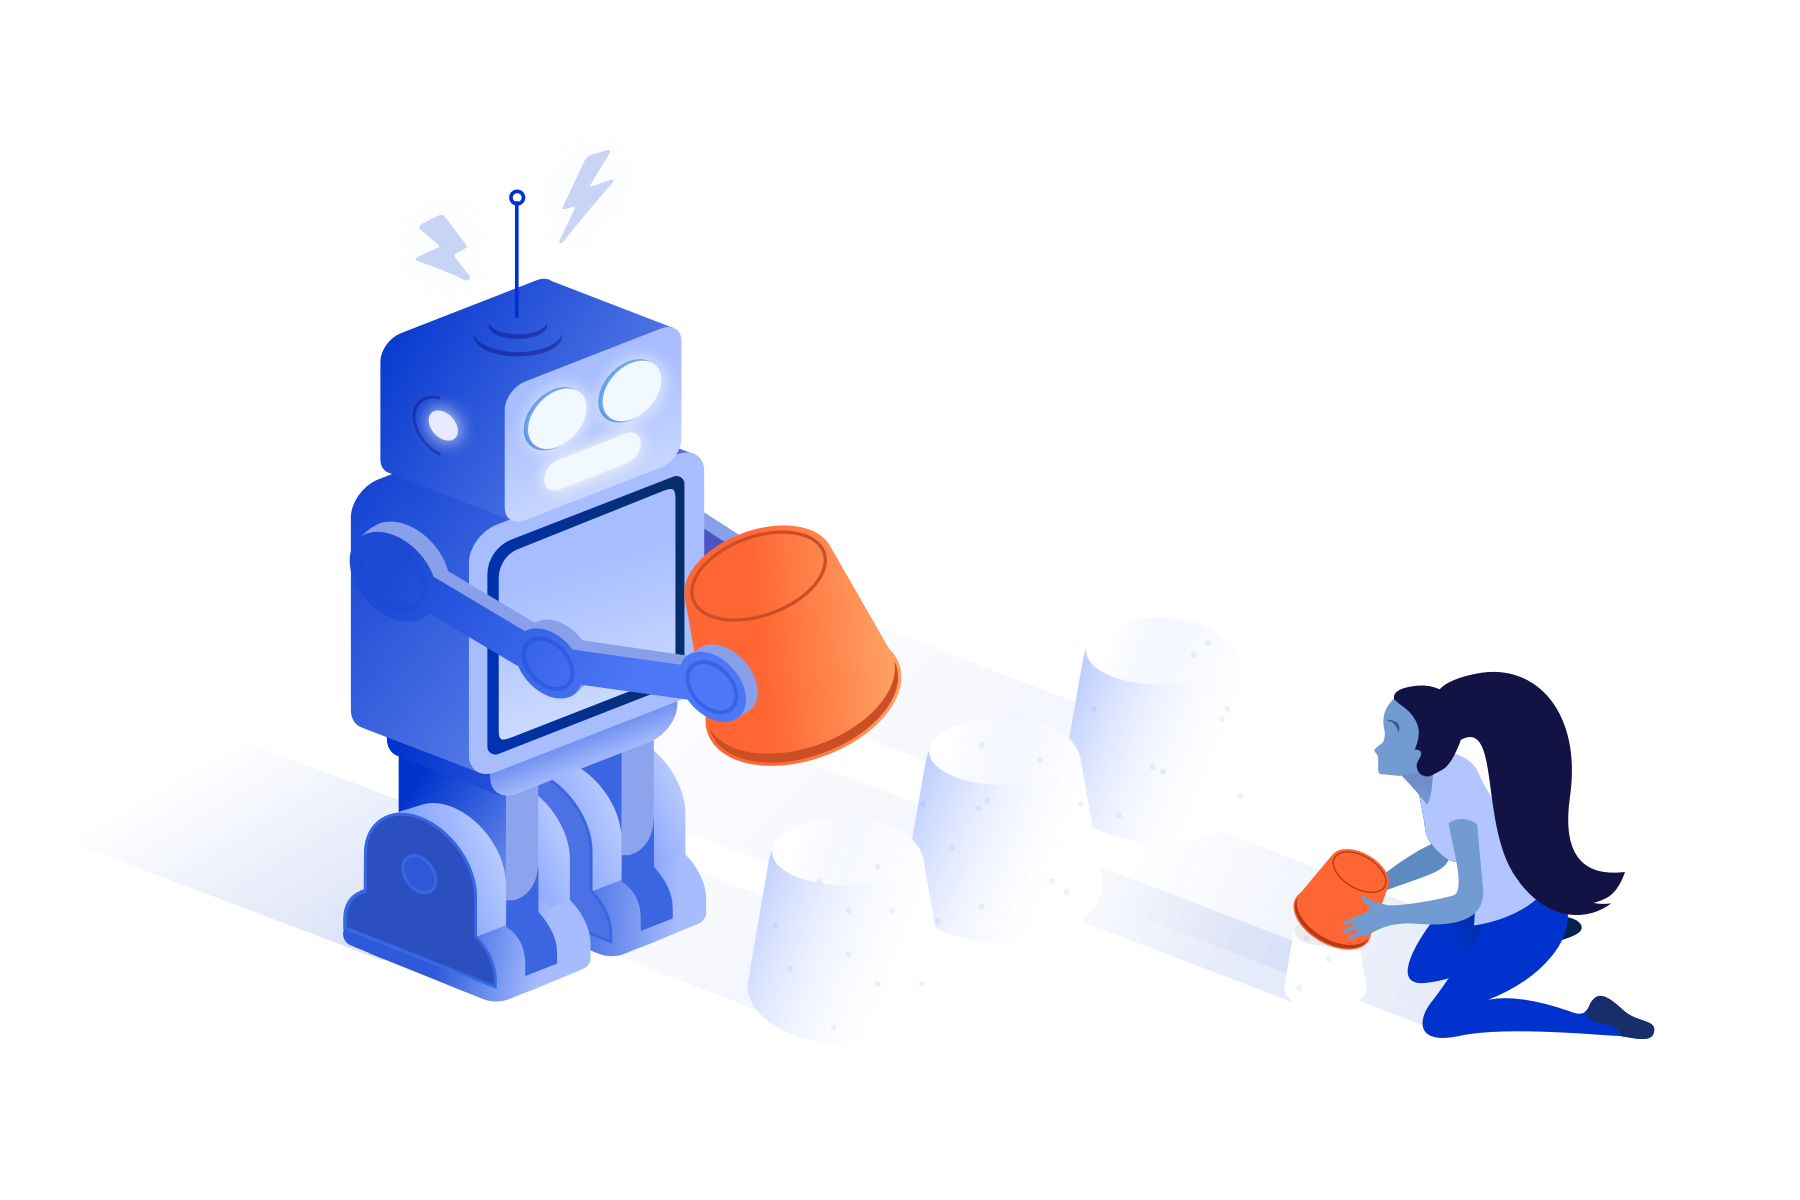 Atlassian tips and tricks robot and girl illustration